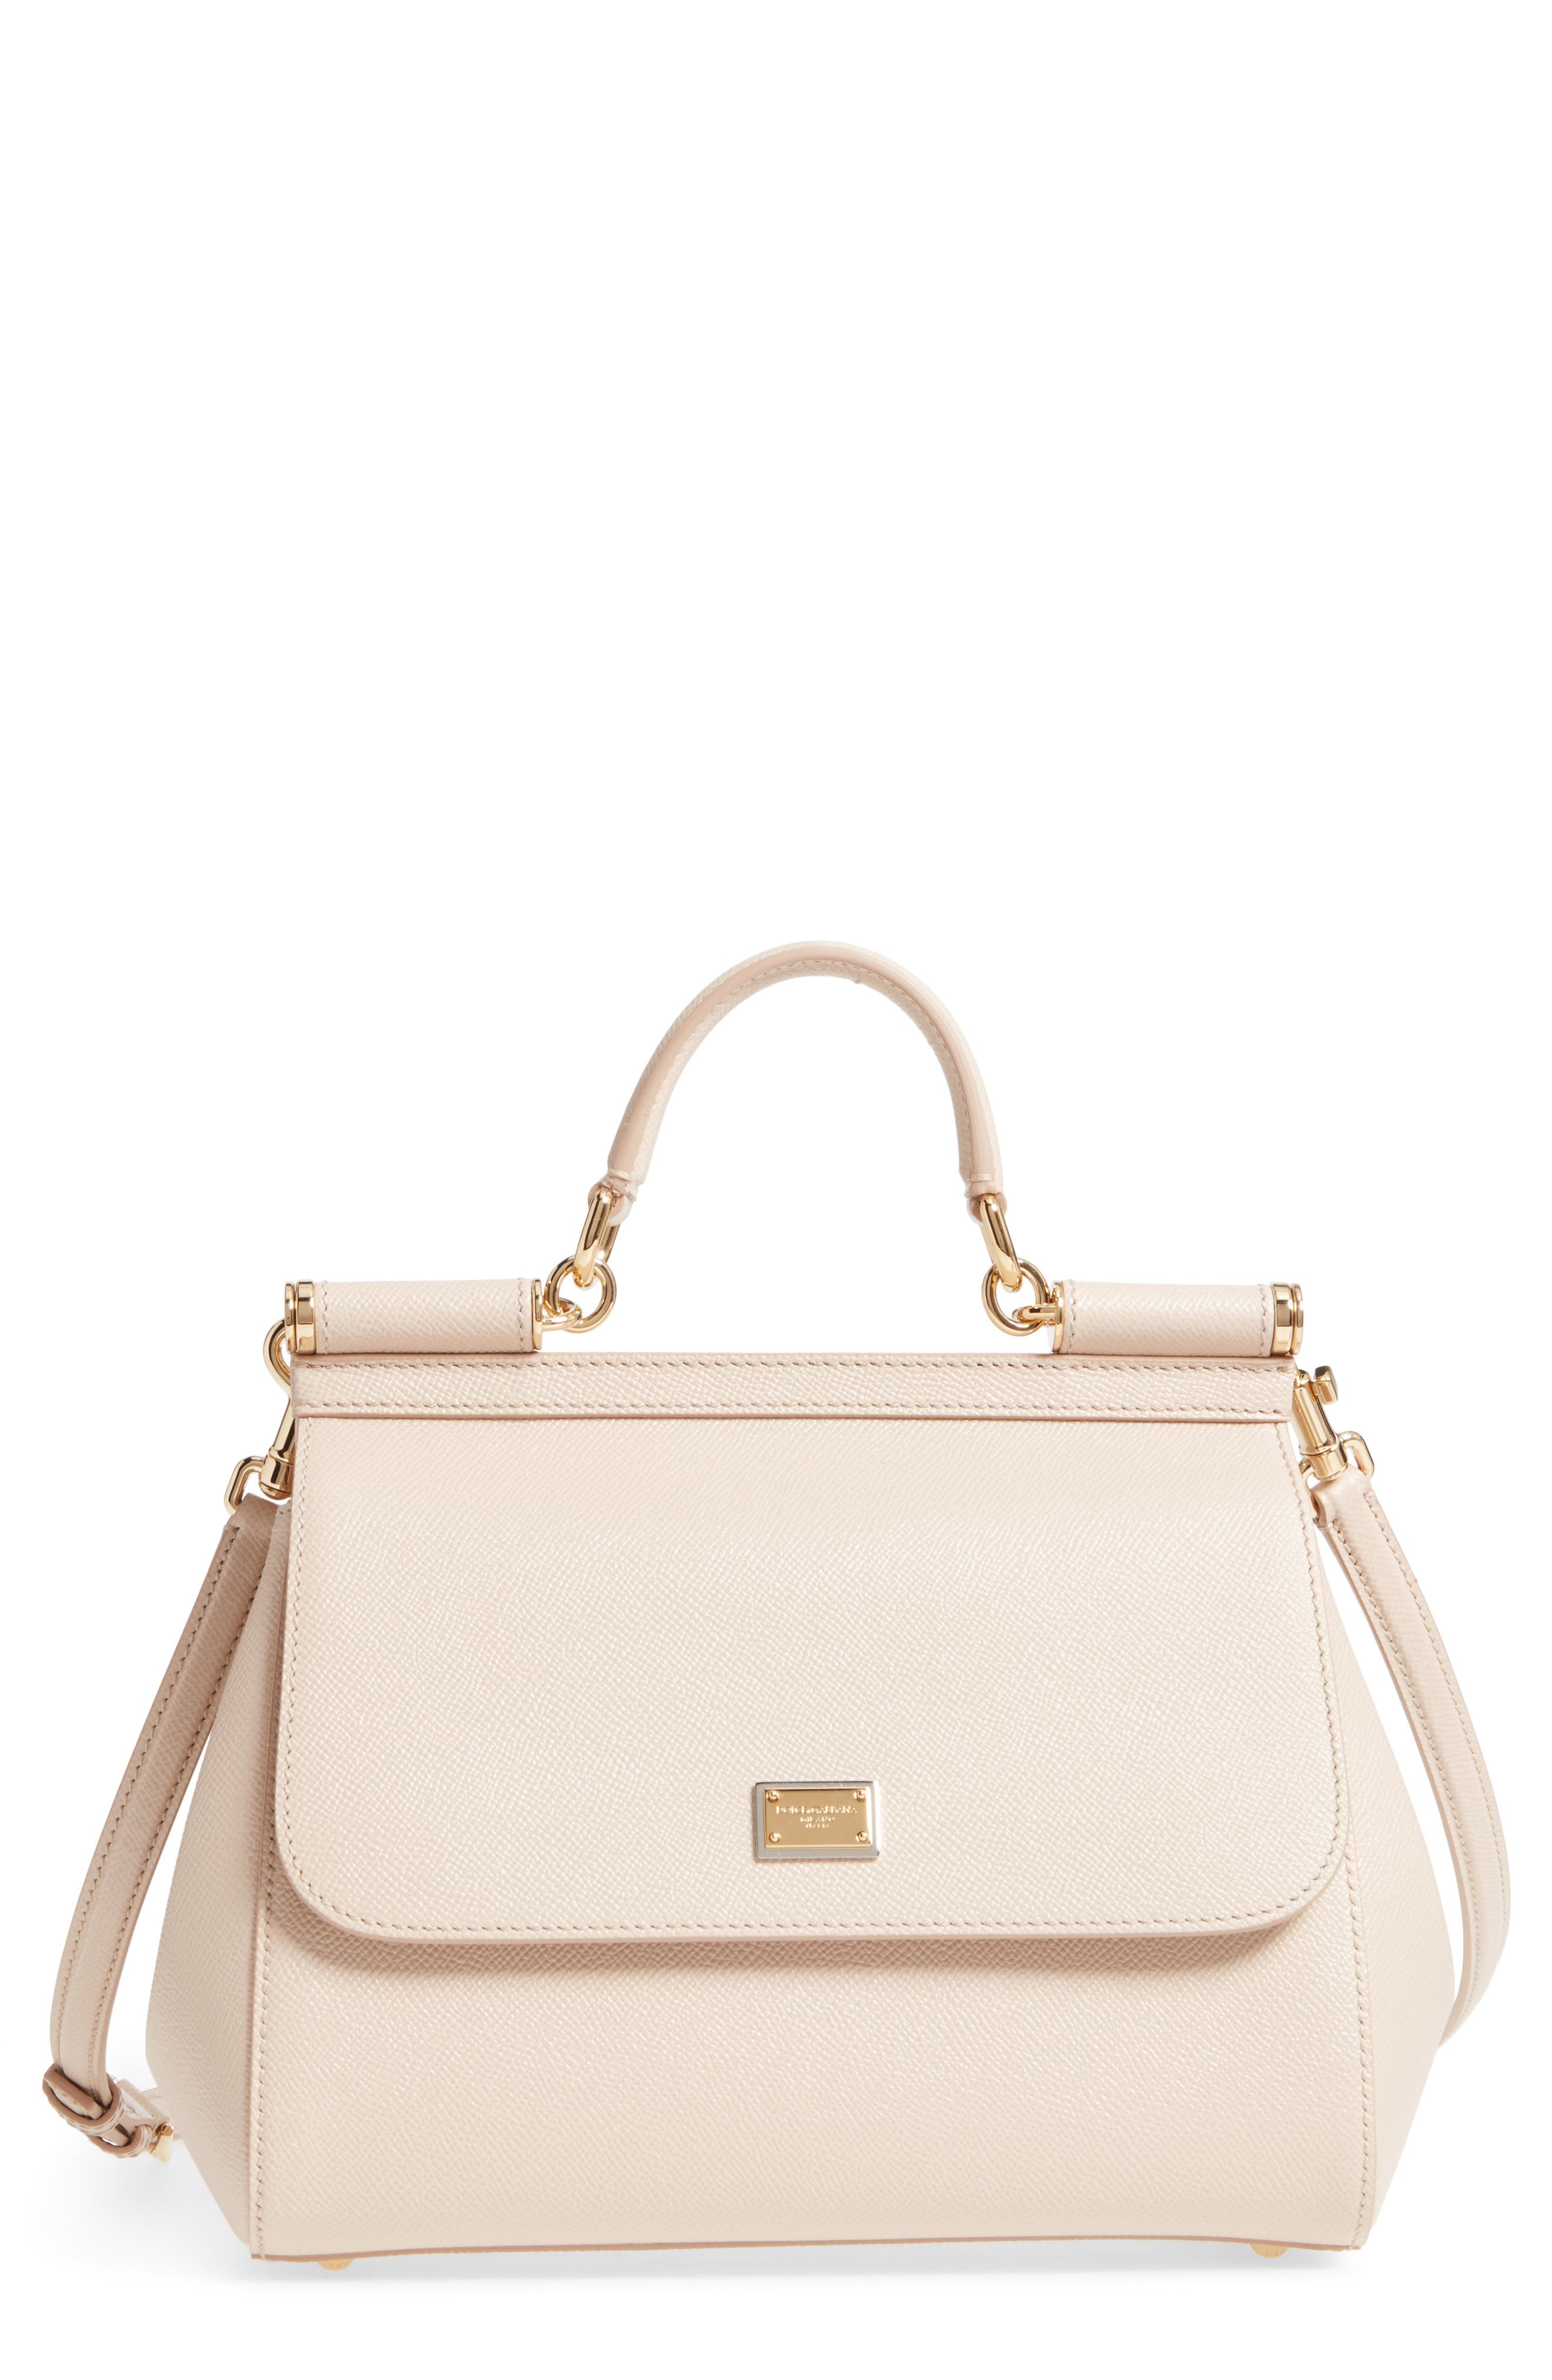 Alternate Image 1 Selected - Dolce&Gabbana 'Small Miss Sicily' Leather Satchel